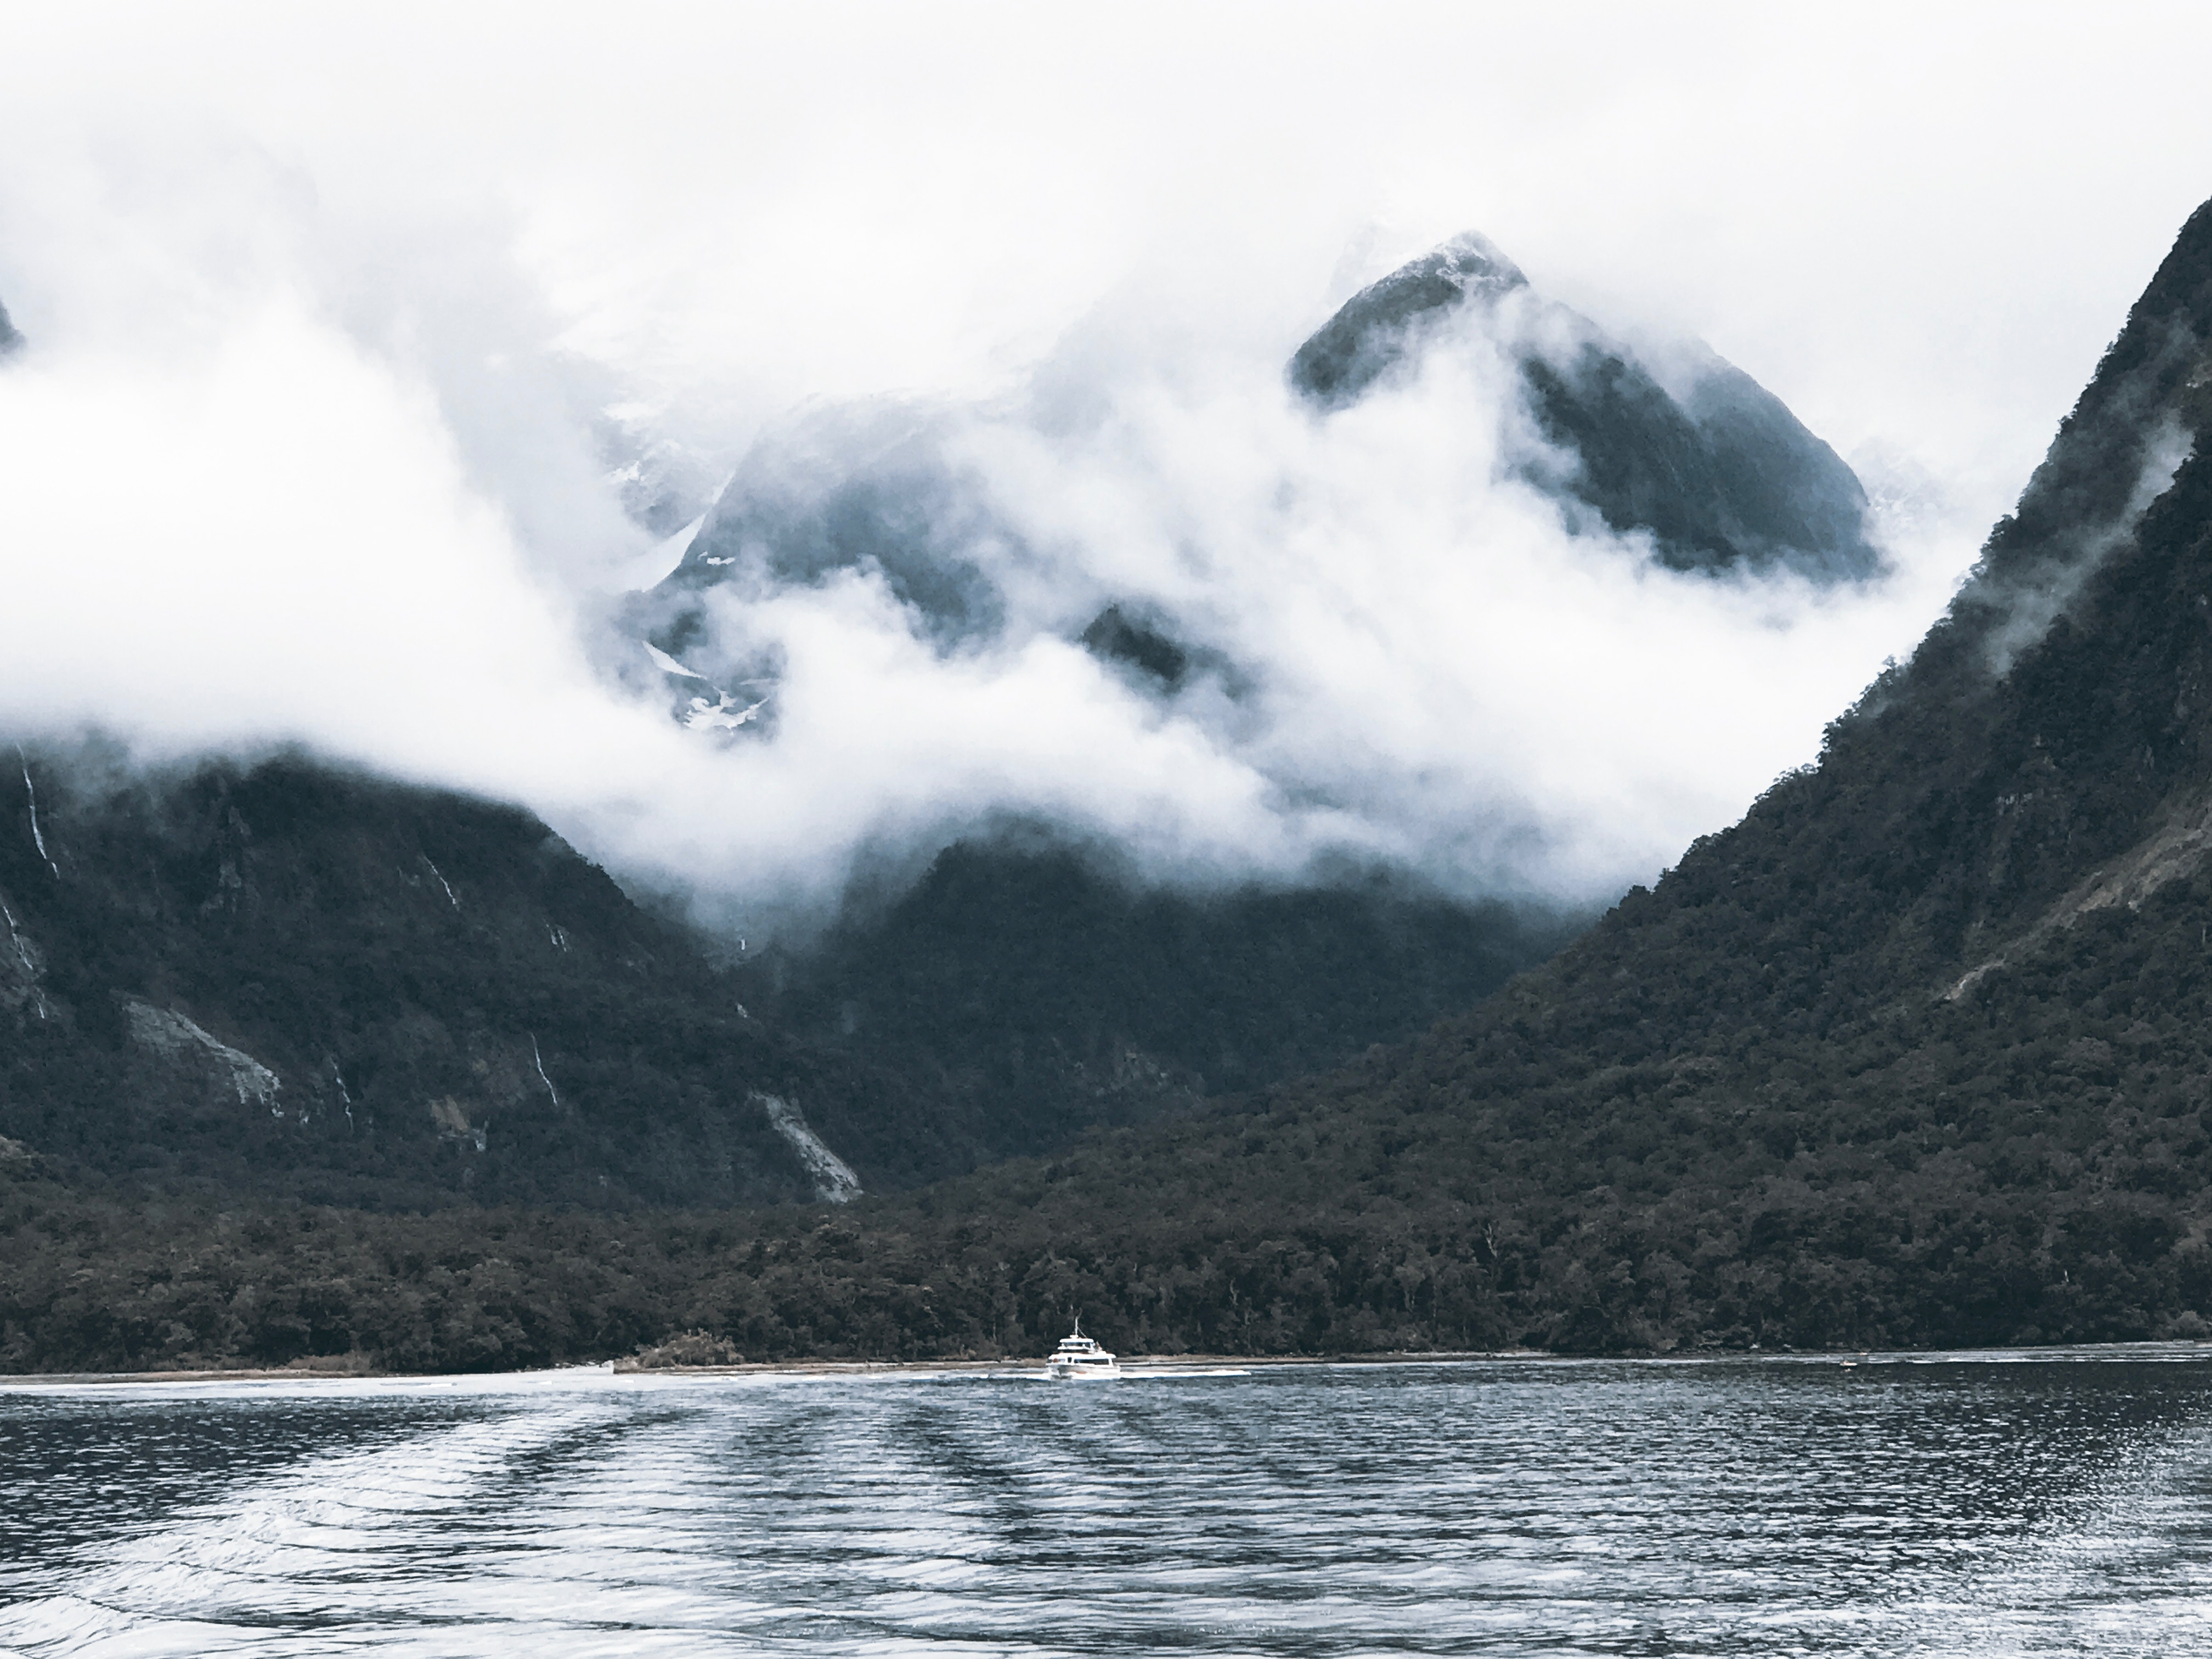 Photography of body of water surrounded by mountains and fogs